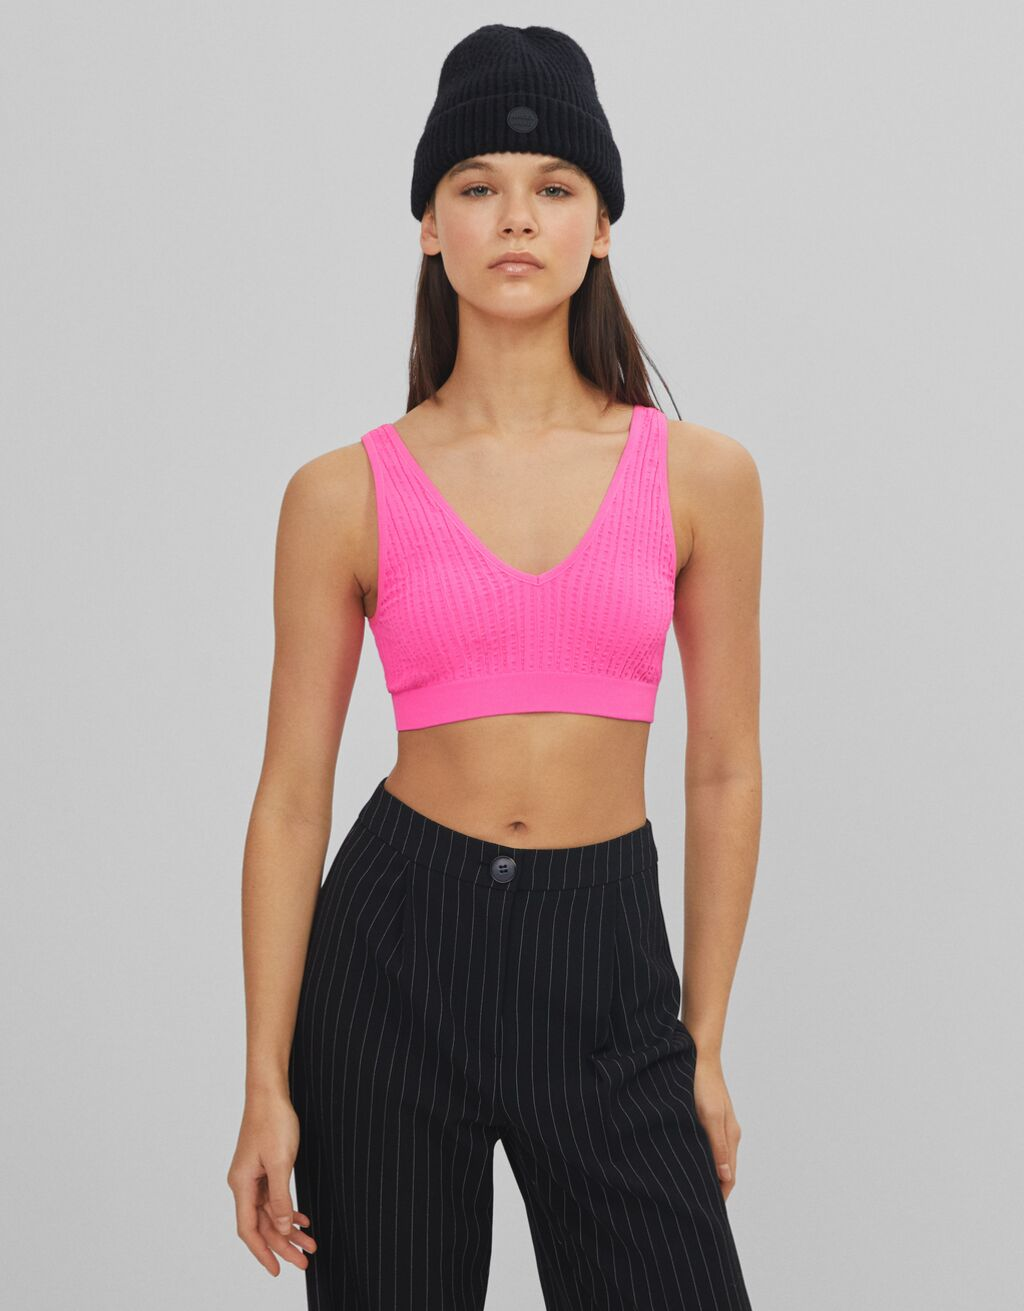 Textured top with straps